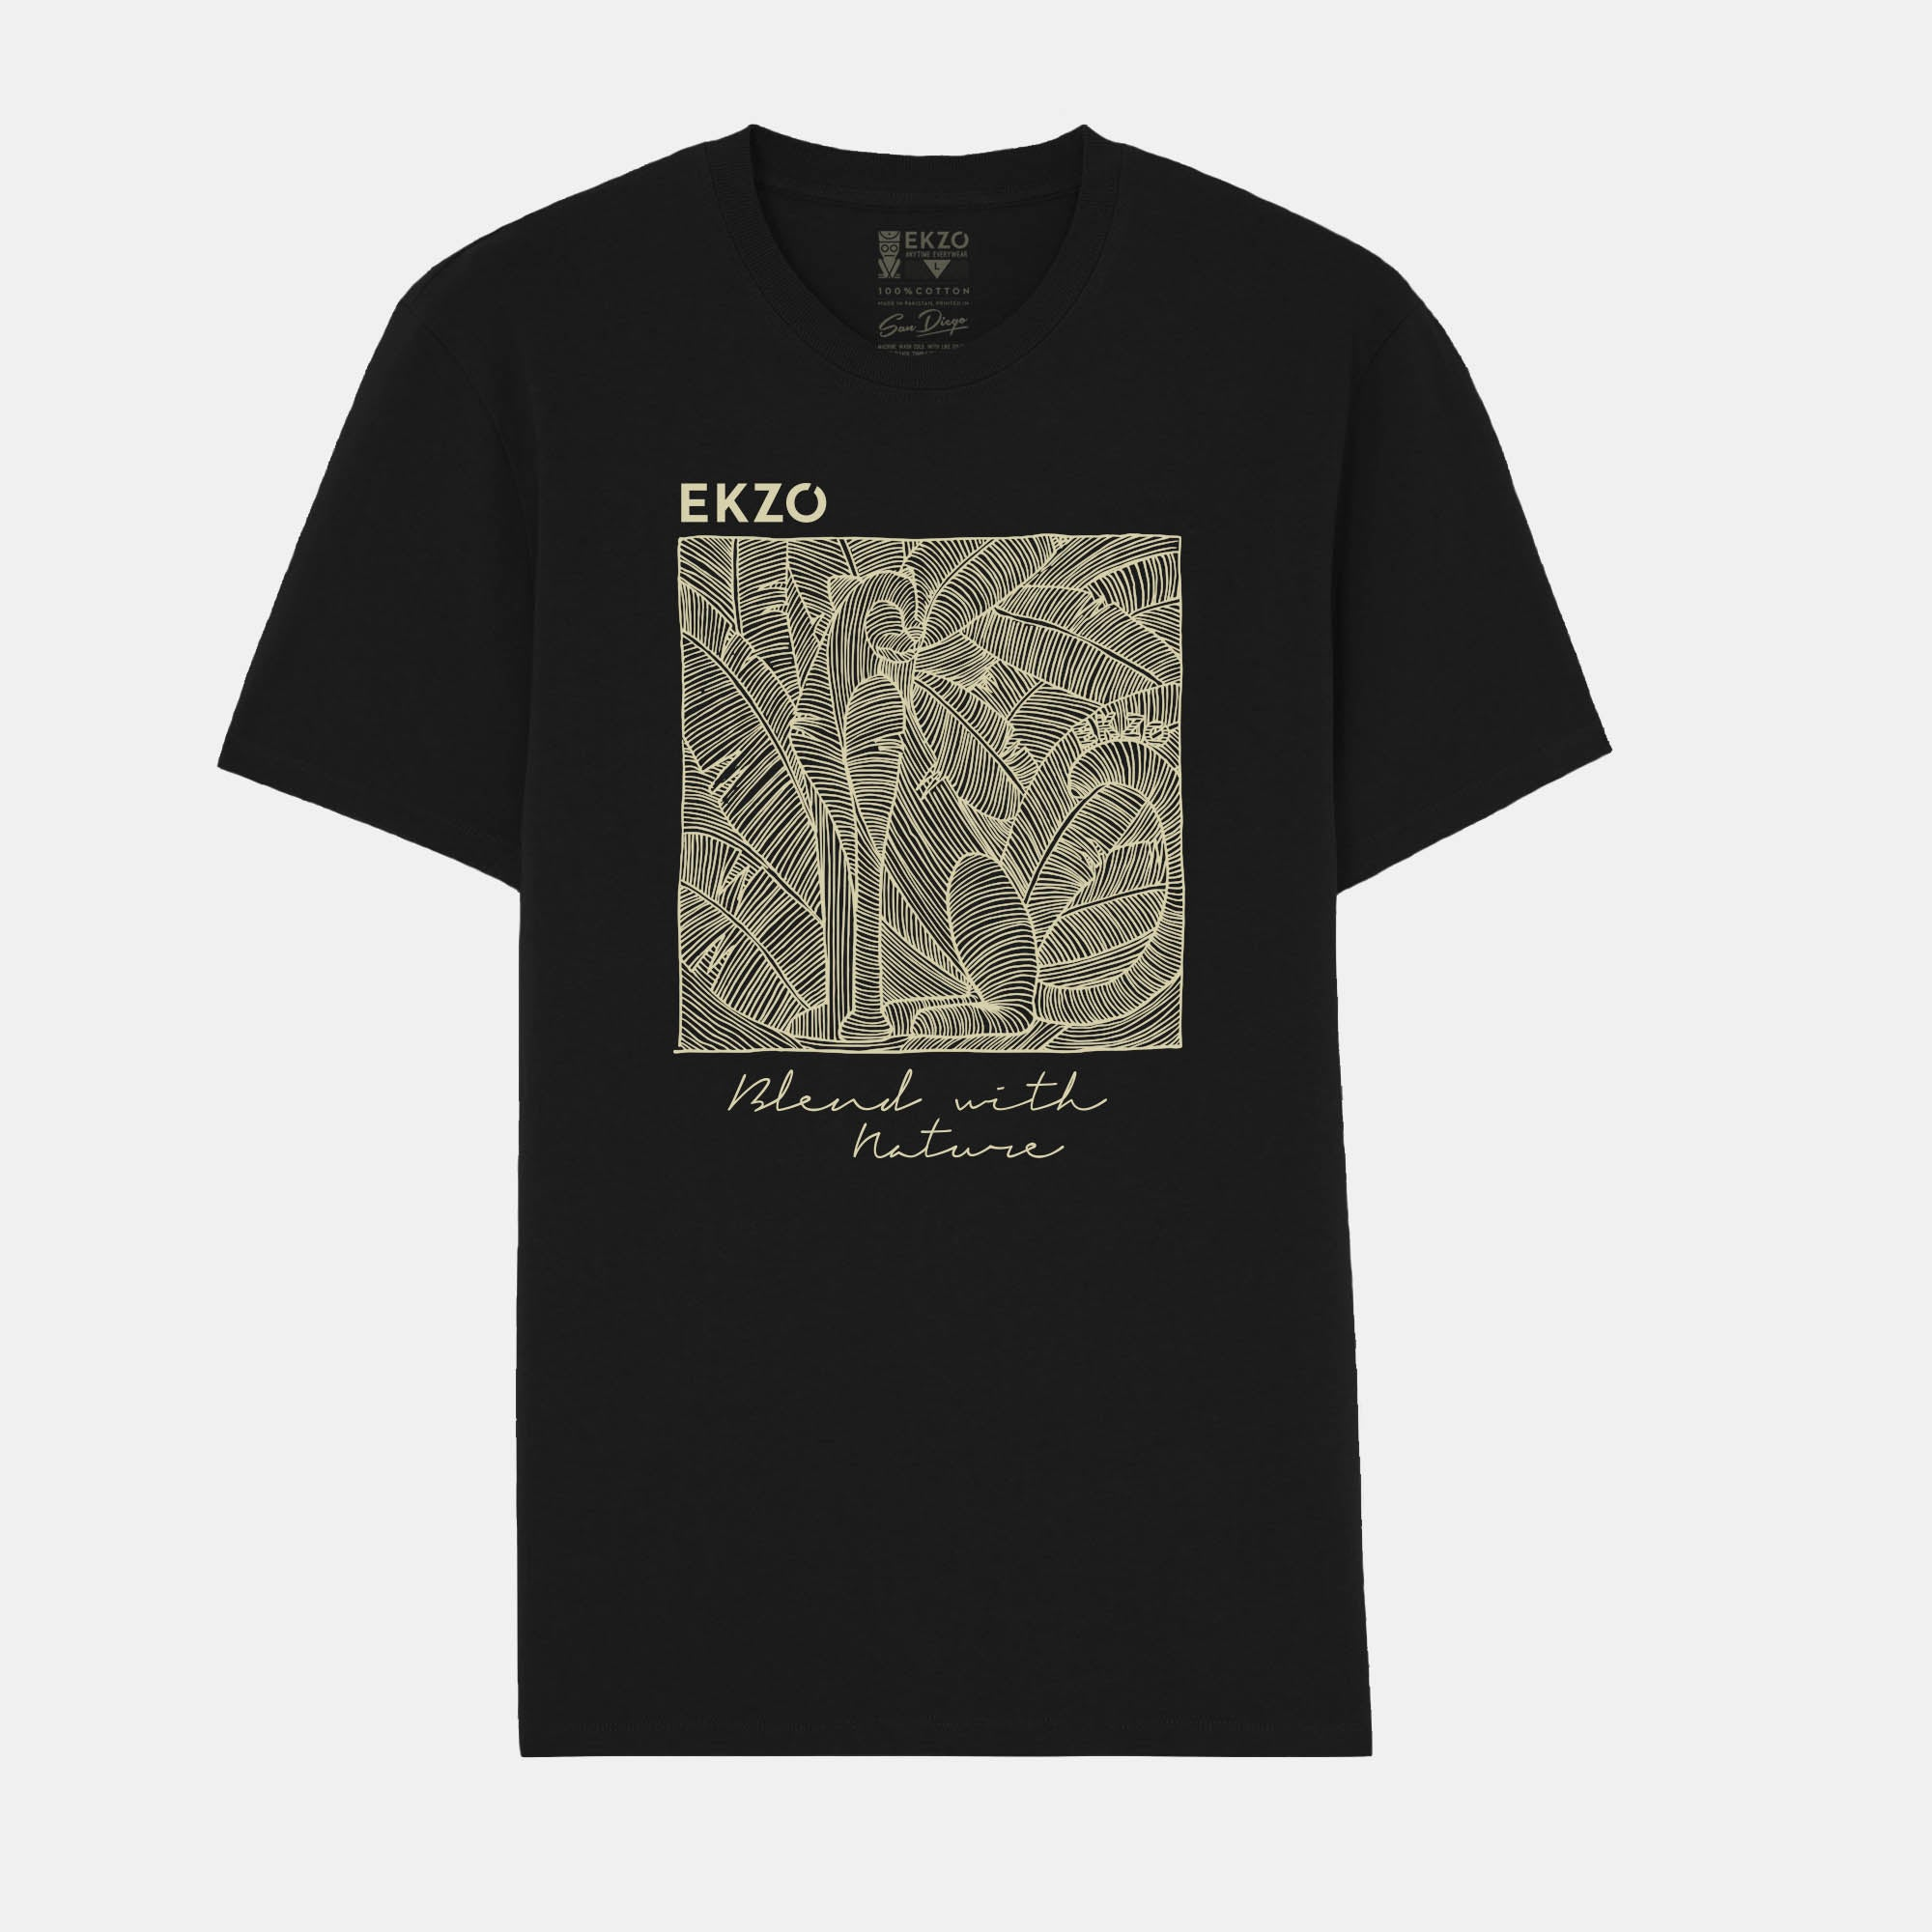 Blend with Nature T-shirt Black - EKZO